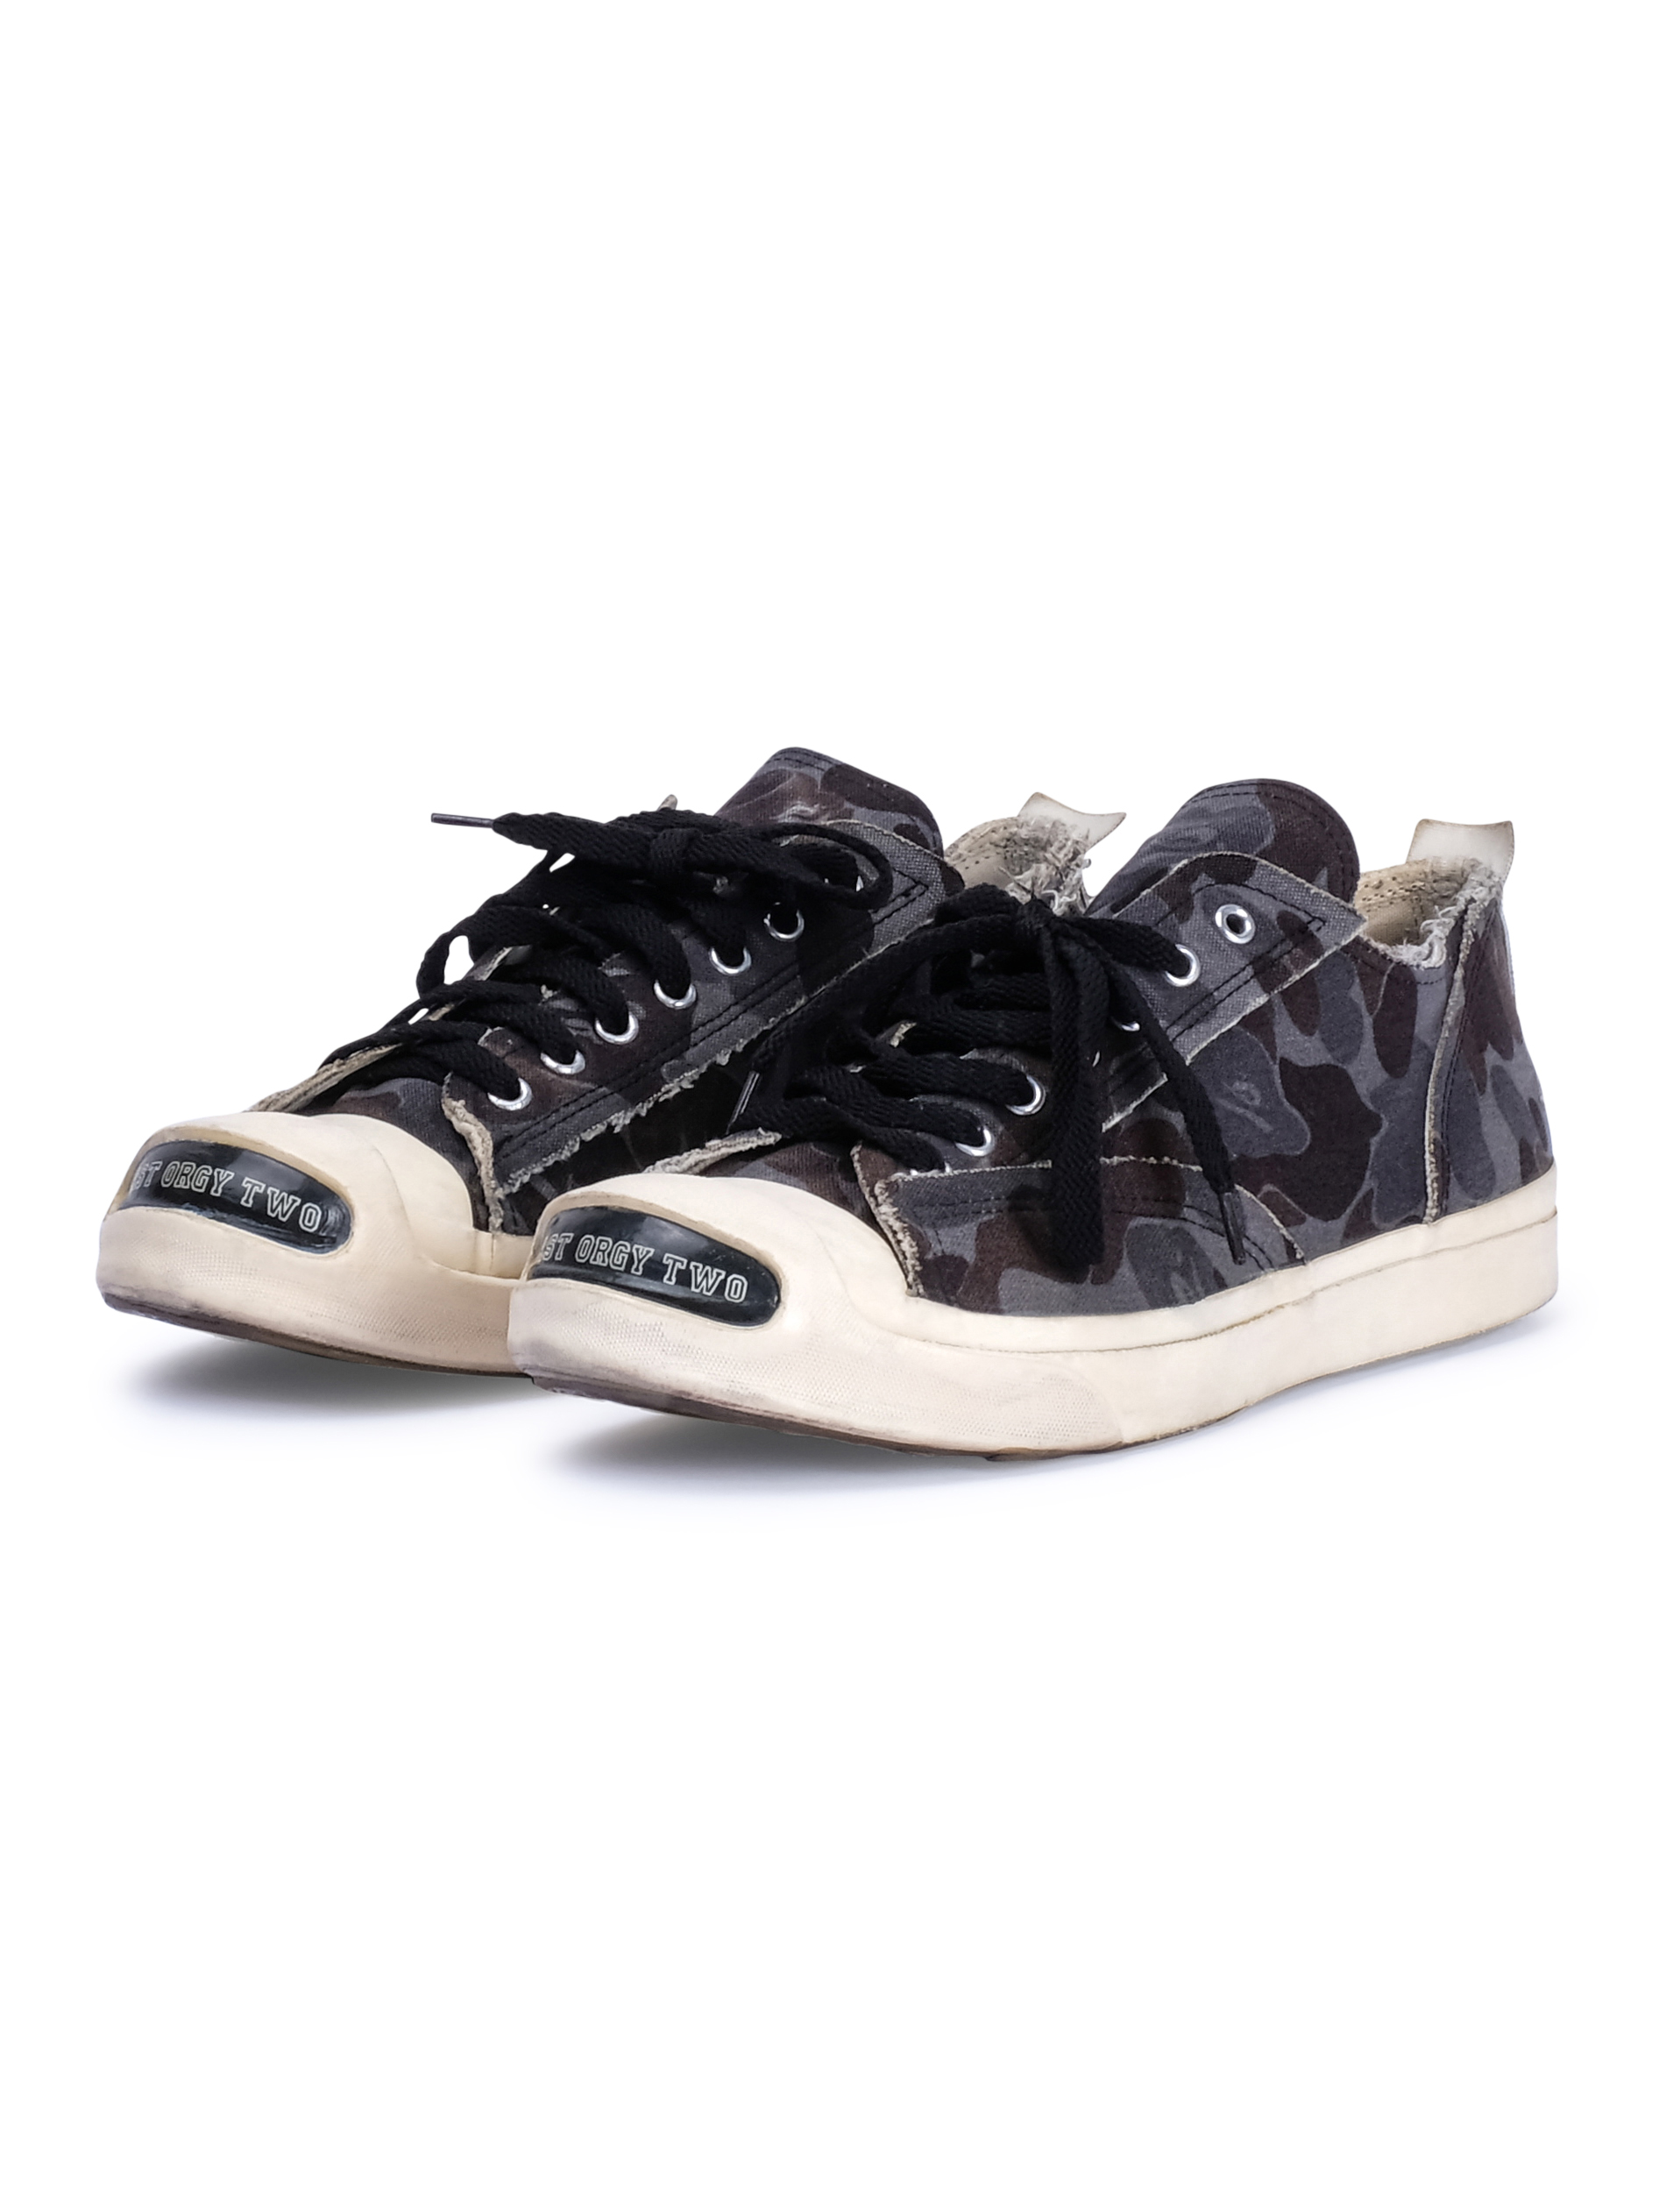 """buy online 8654c 92ff7 Undercover × Bape ×. """"Last Orgy Two"""" Camo Low Top Sneakers"""